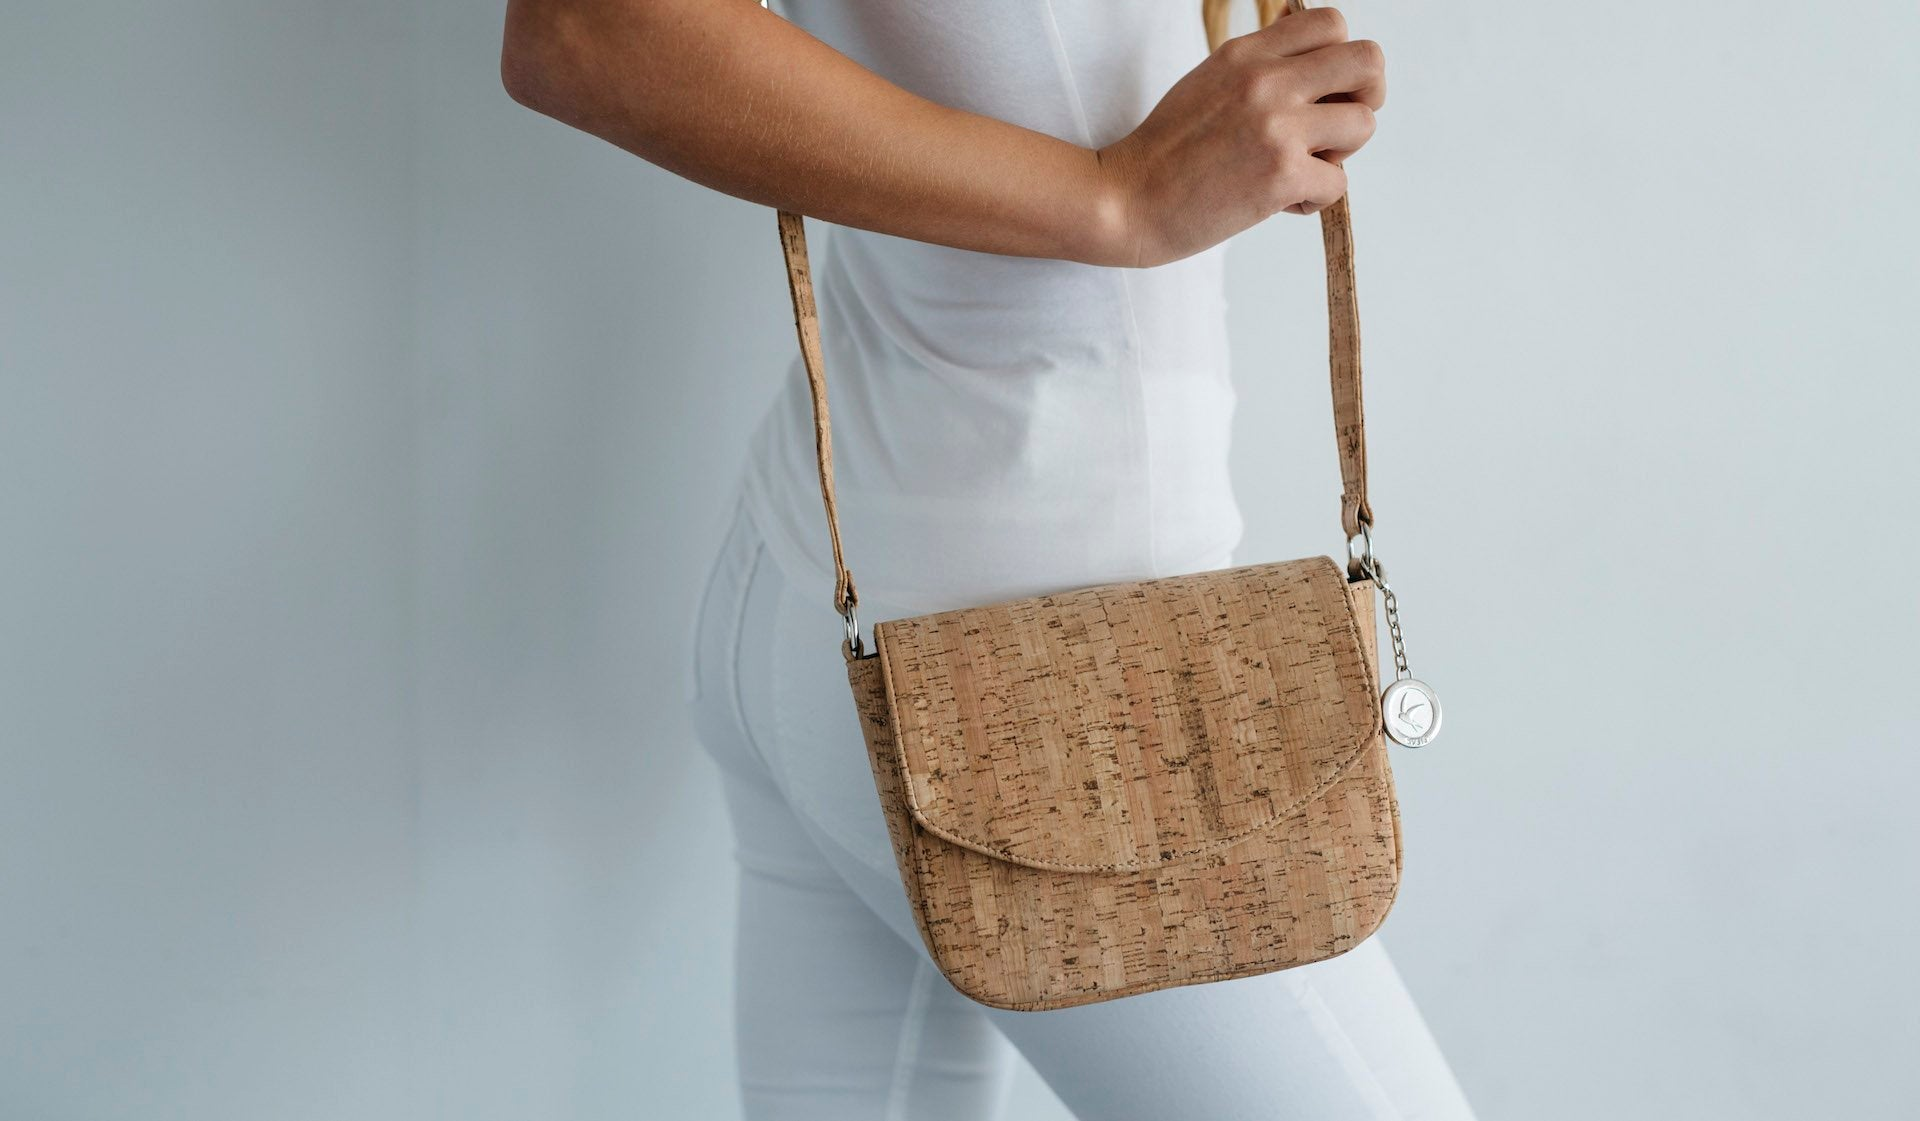 Svala vegan handbag cork luxury designer sustainable